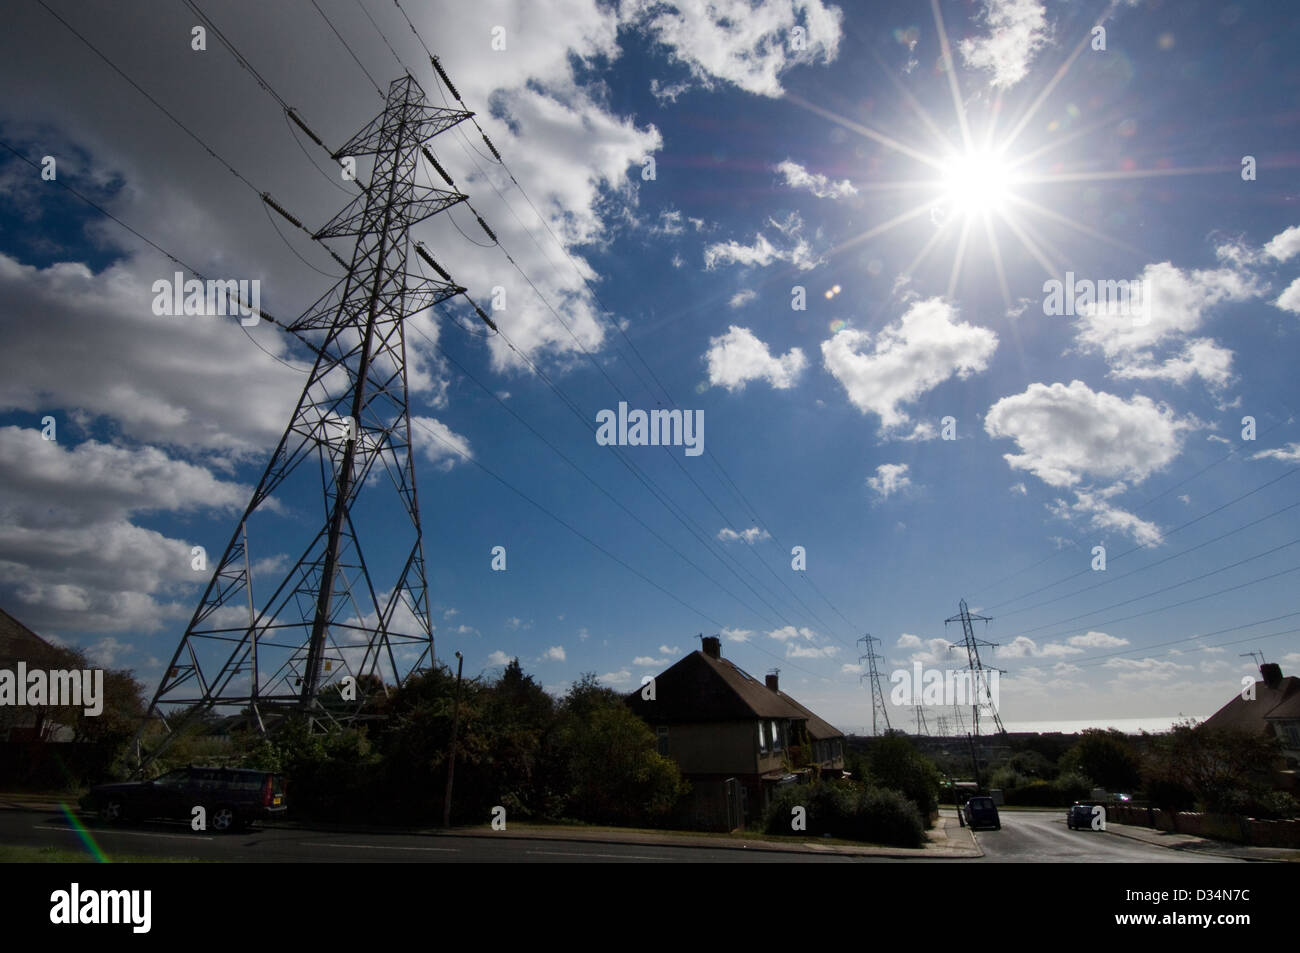 Pylons march across a housing estate - Stock Image